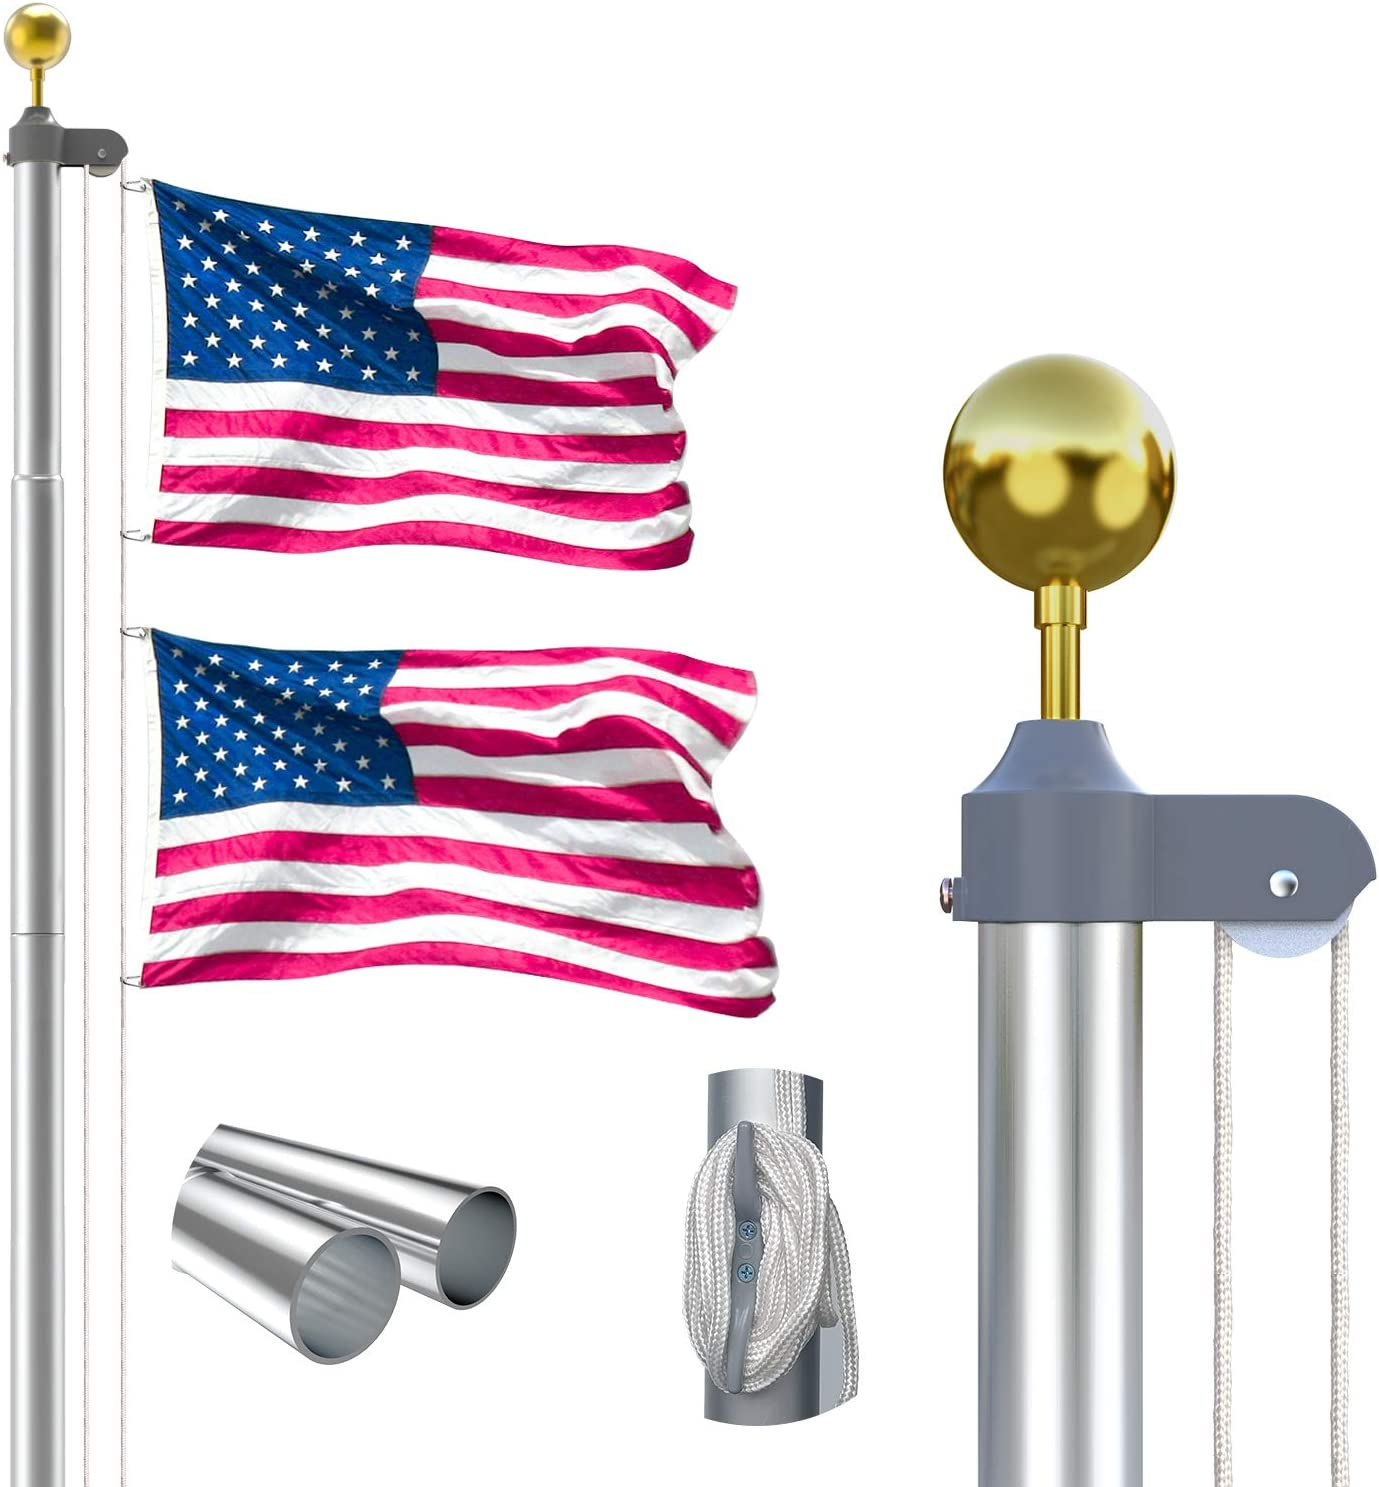 25FT Sectional Flag Pole Kit, Extra Thick Heavy Duty Aluminum Flagpole Set Outdoor in Ground Flag Poles with 3x5 USA Flag for Residential or Commercial,Silver